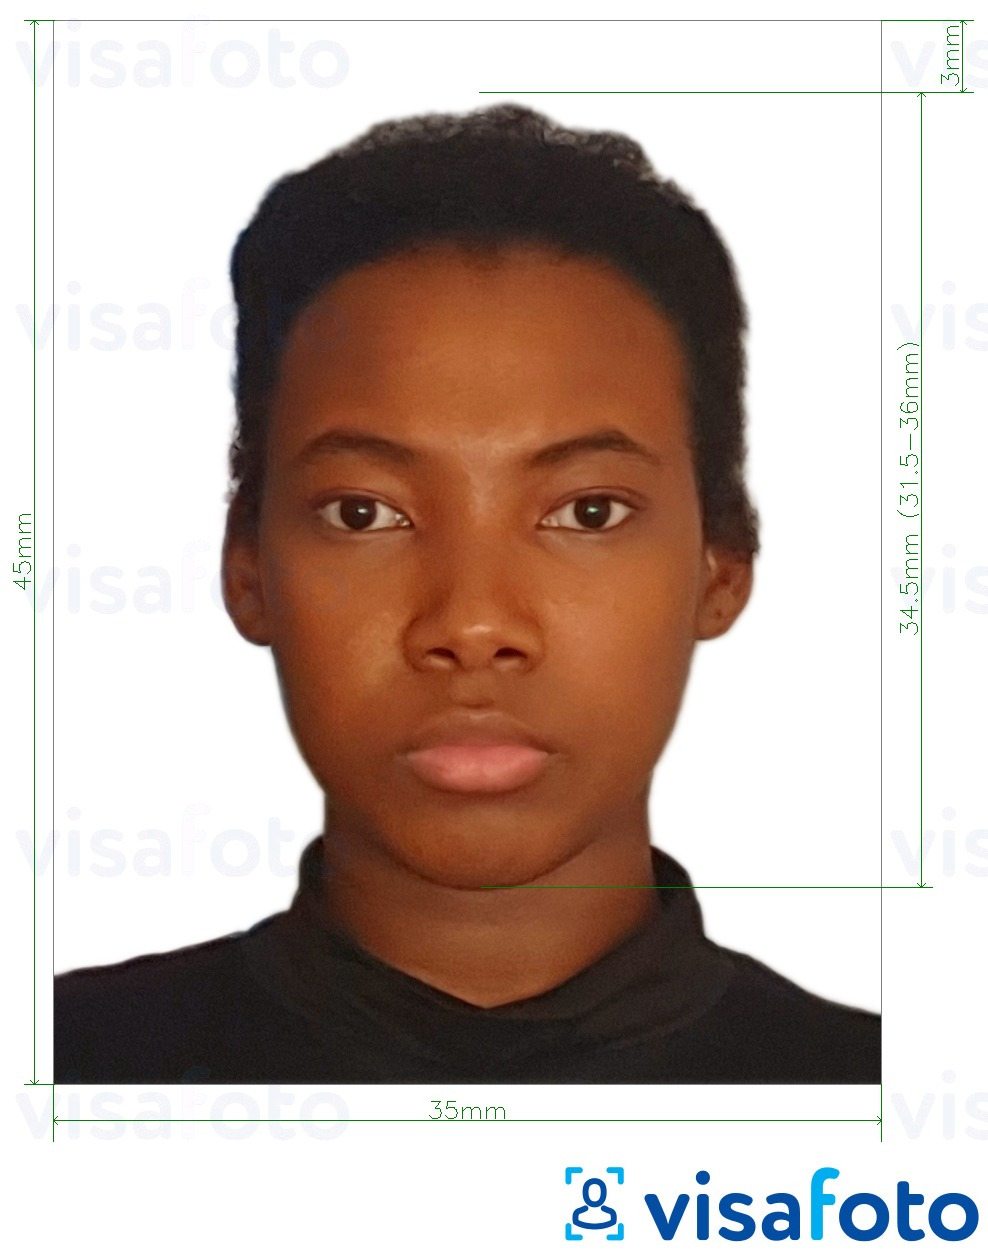 Example of photo for Guyana passport 45x35 mm (1.77 x 1.38 inch) with exact size specification